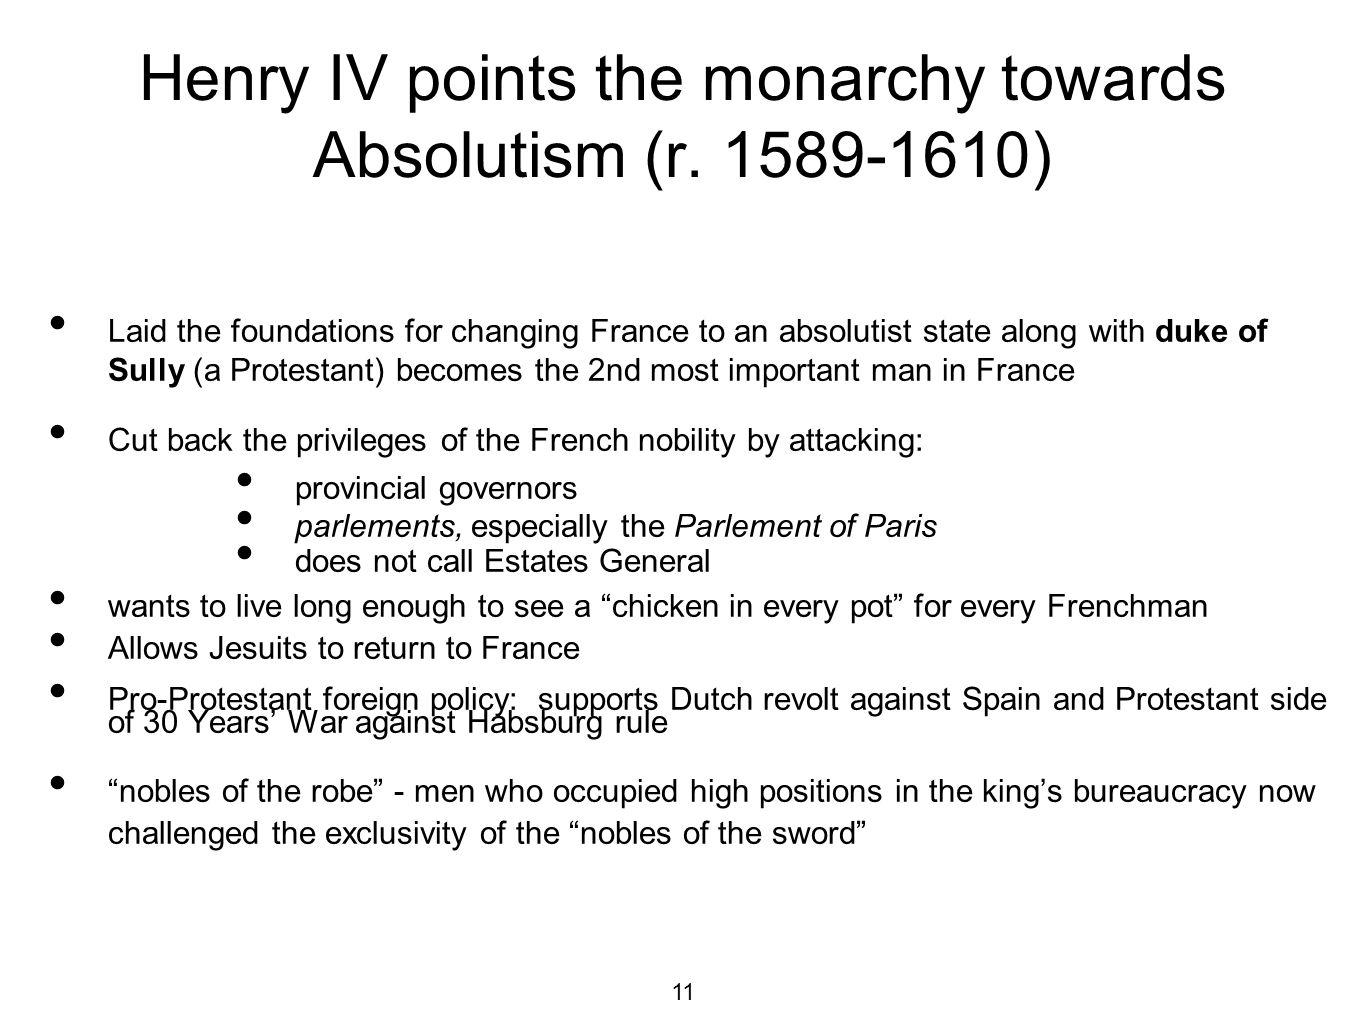 Henry IV points the monarchy towards Absolutism (r. 1589-1610)